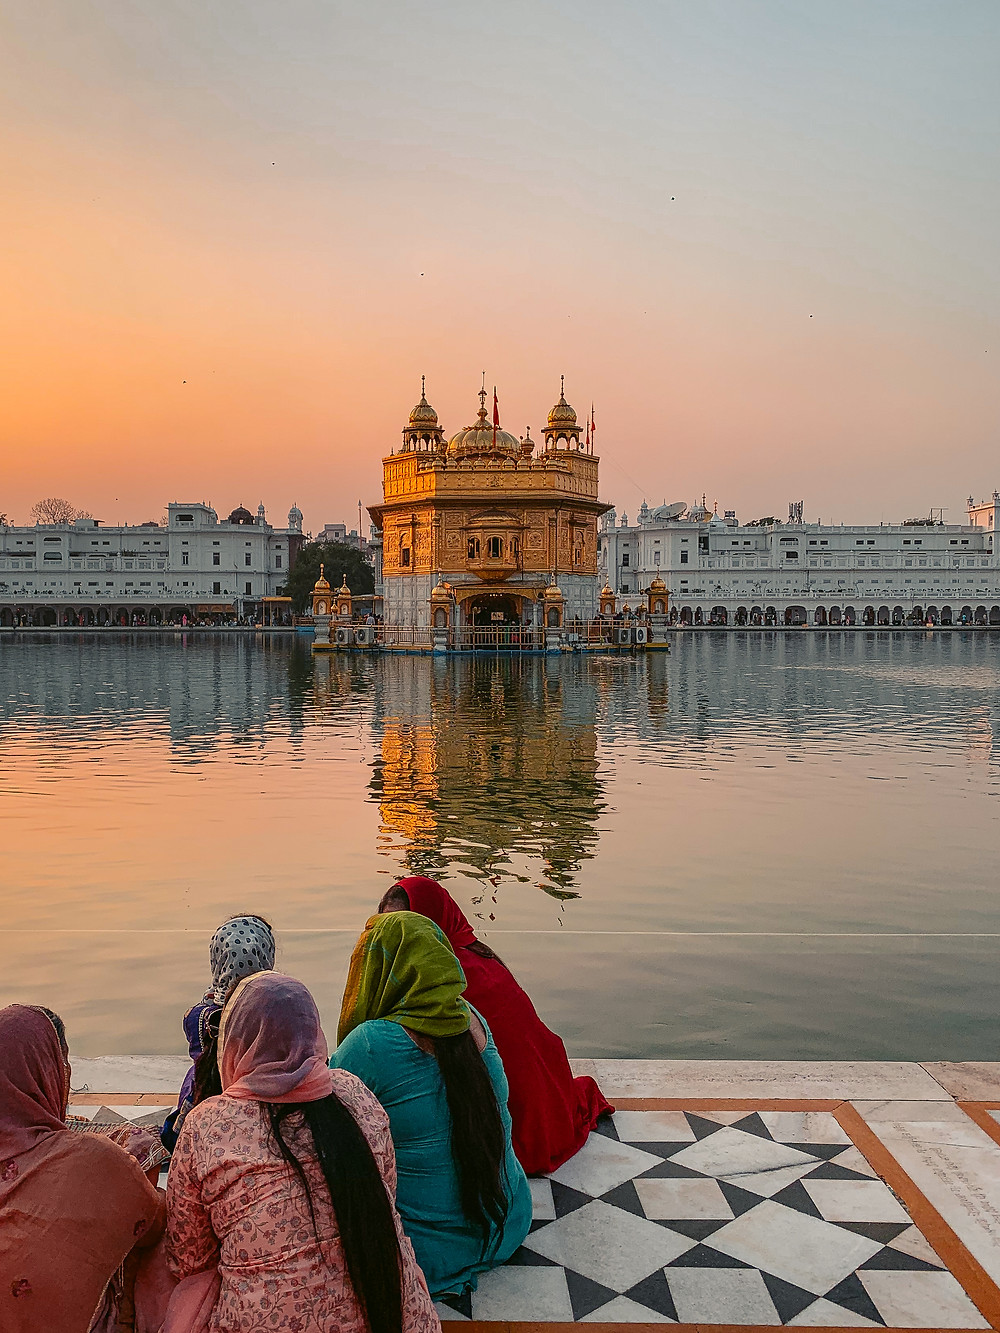 golden temple punjab, golden temple in india, amritsar, golden temple facts, golden temple history, golden temple timings, golden temple photos, golden temple rules